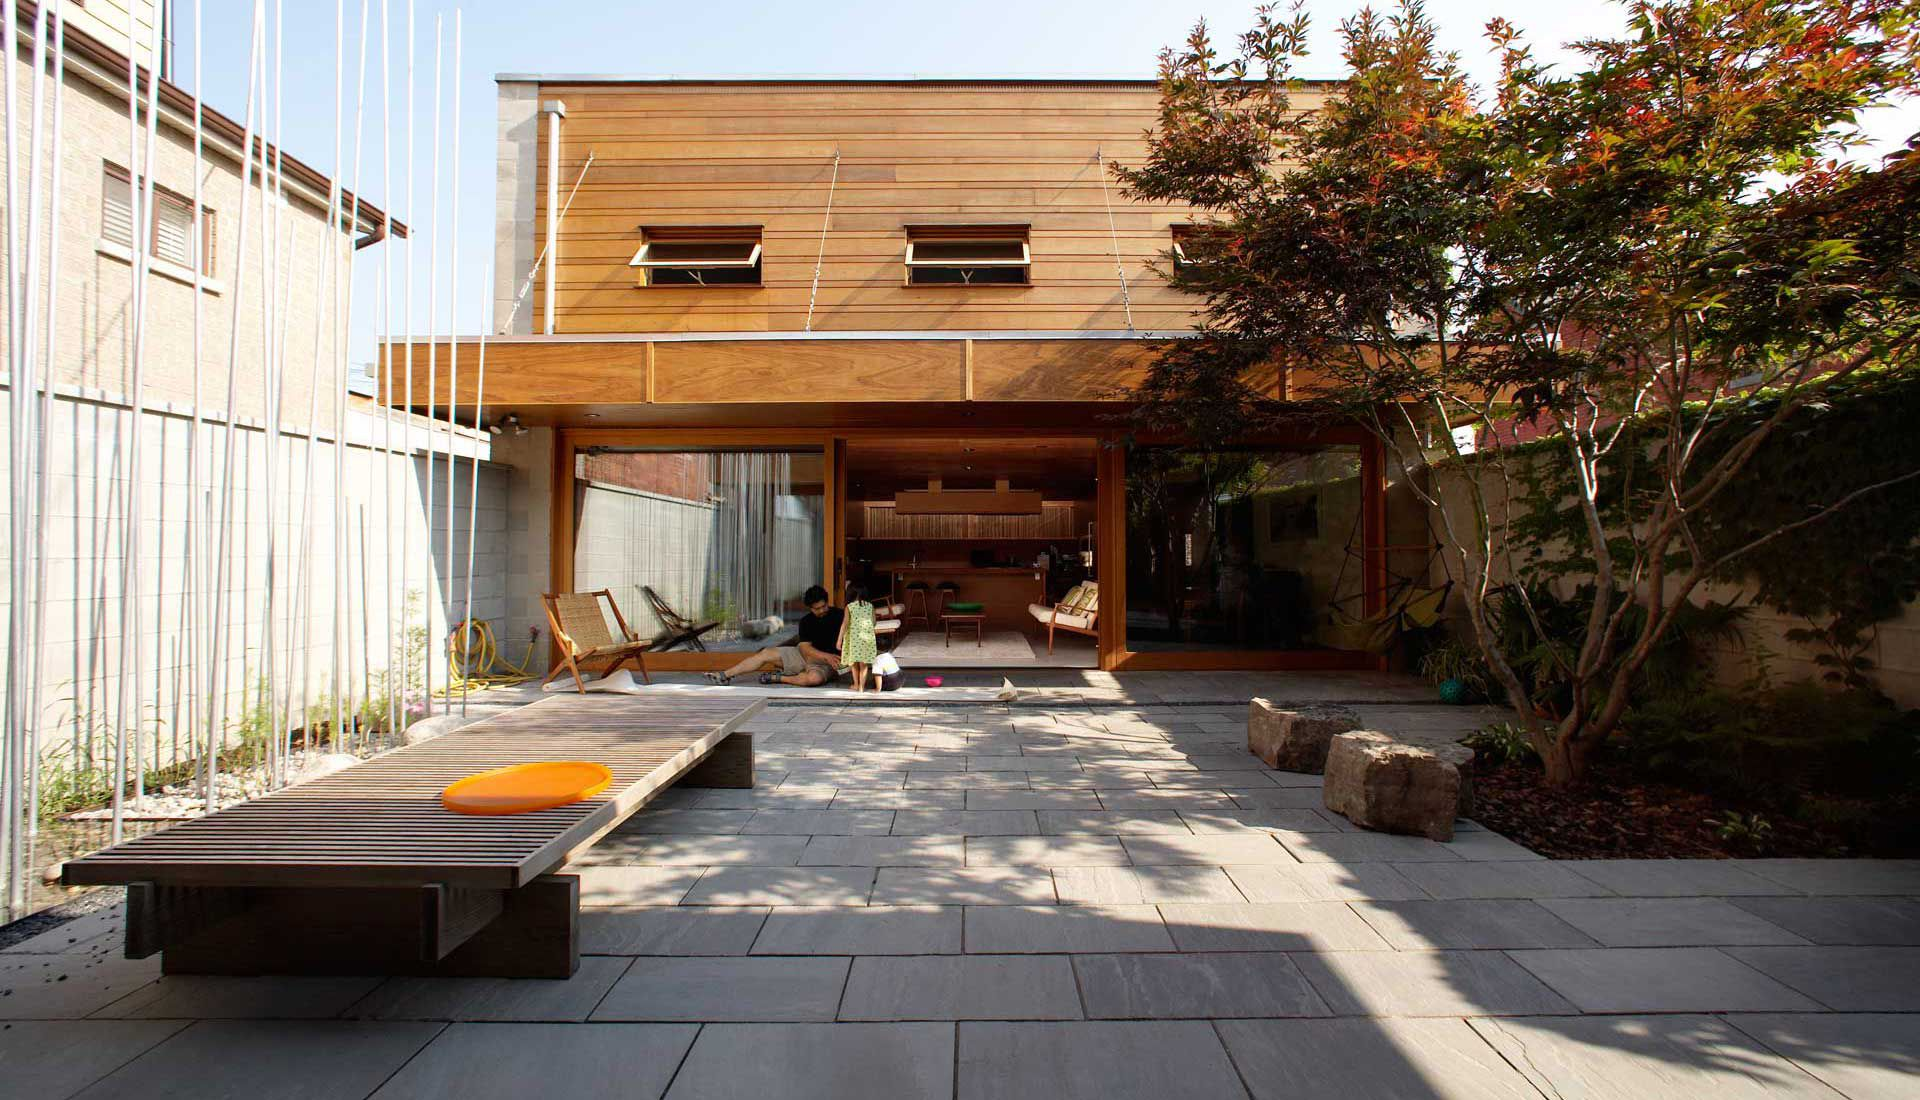 After 2 000 Years Courtyard Houses Are All The Rage Again